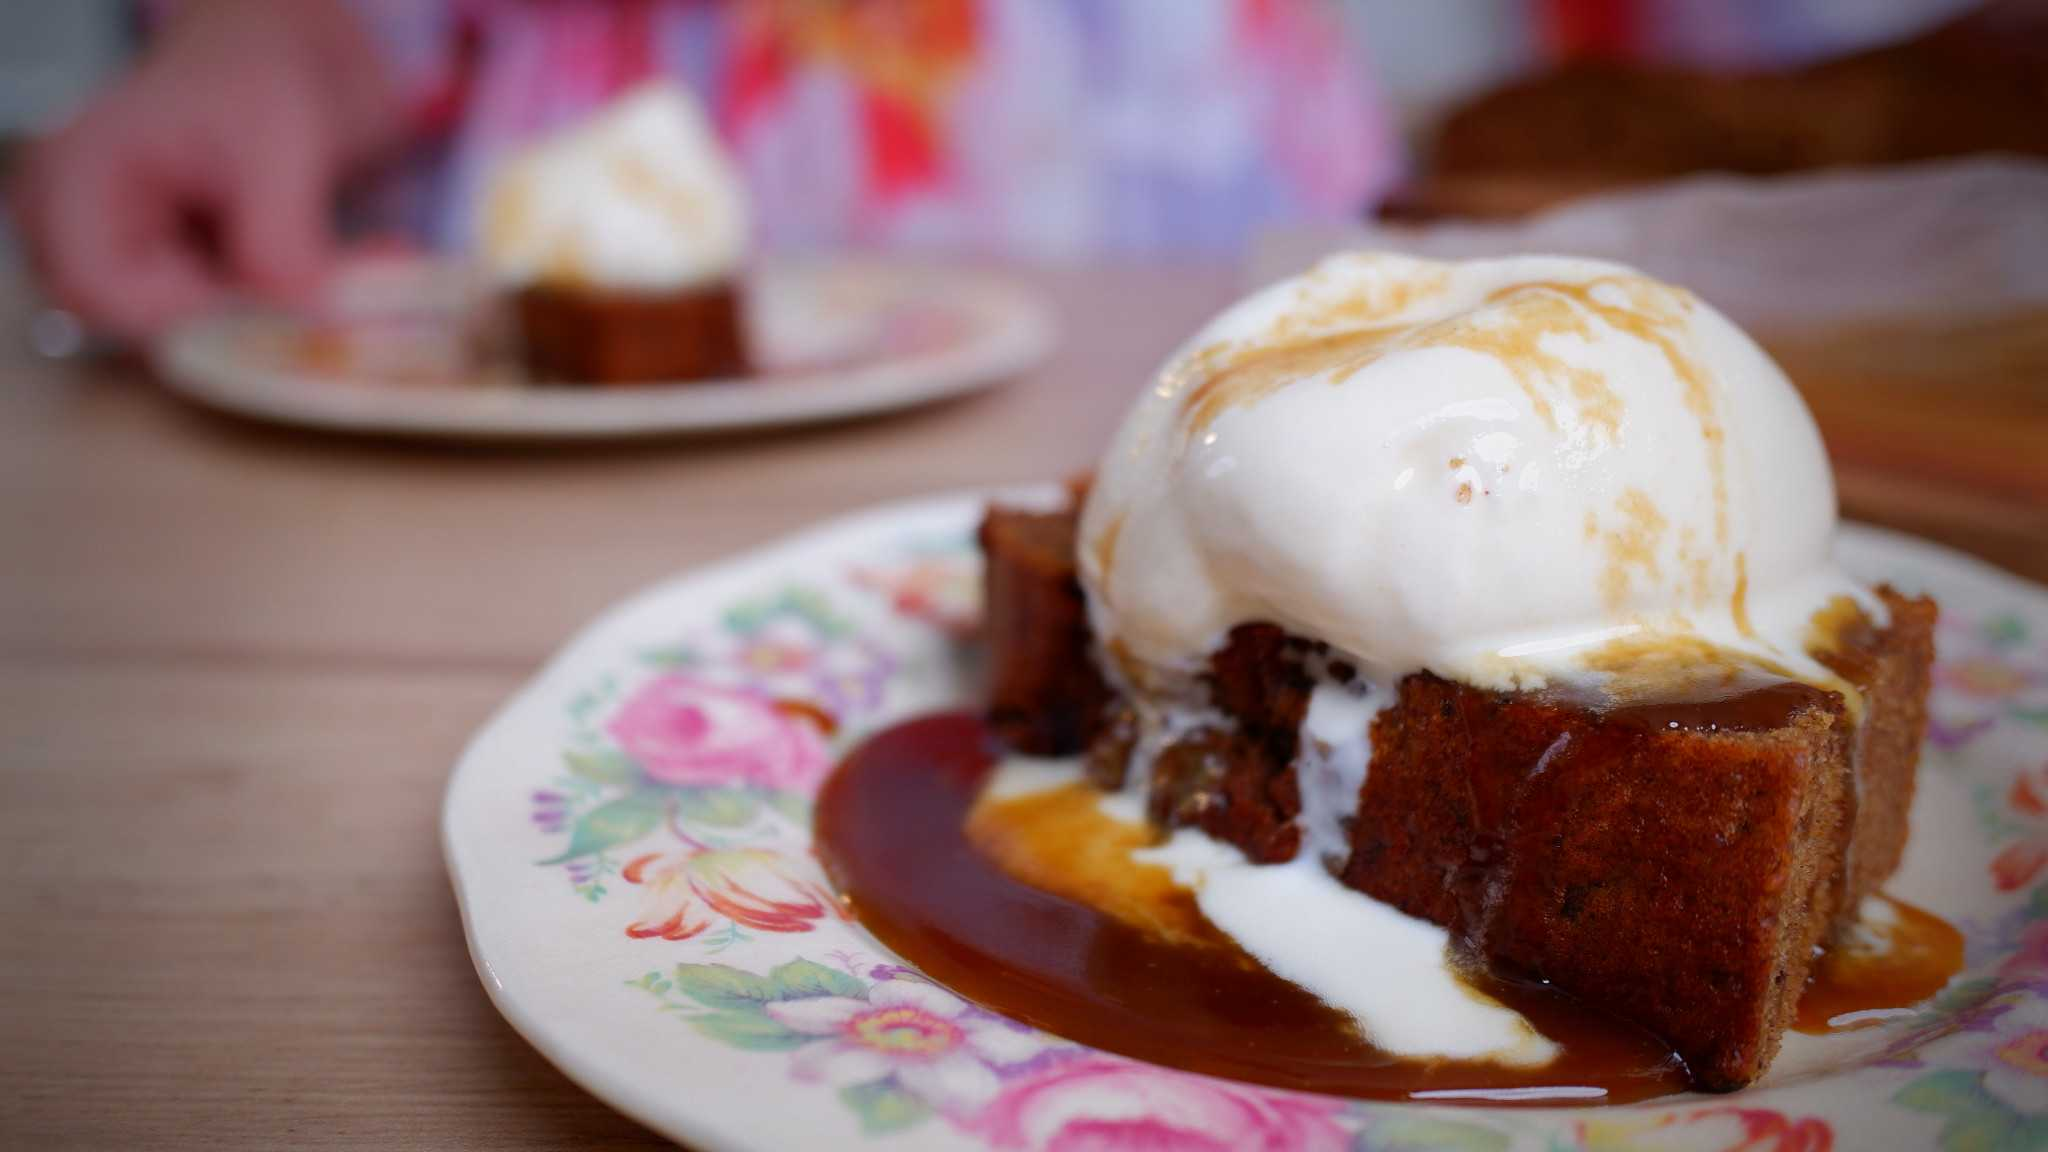 9Honey Every Day Kitchen: Classic sticky date pudding with butterscotch sauce